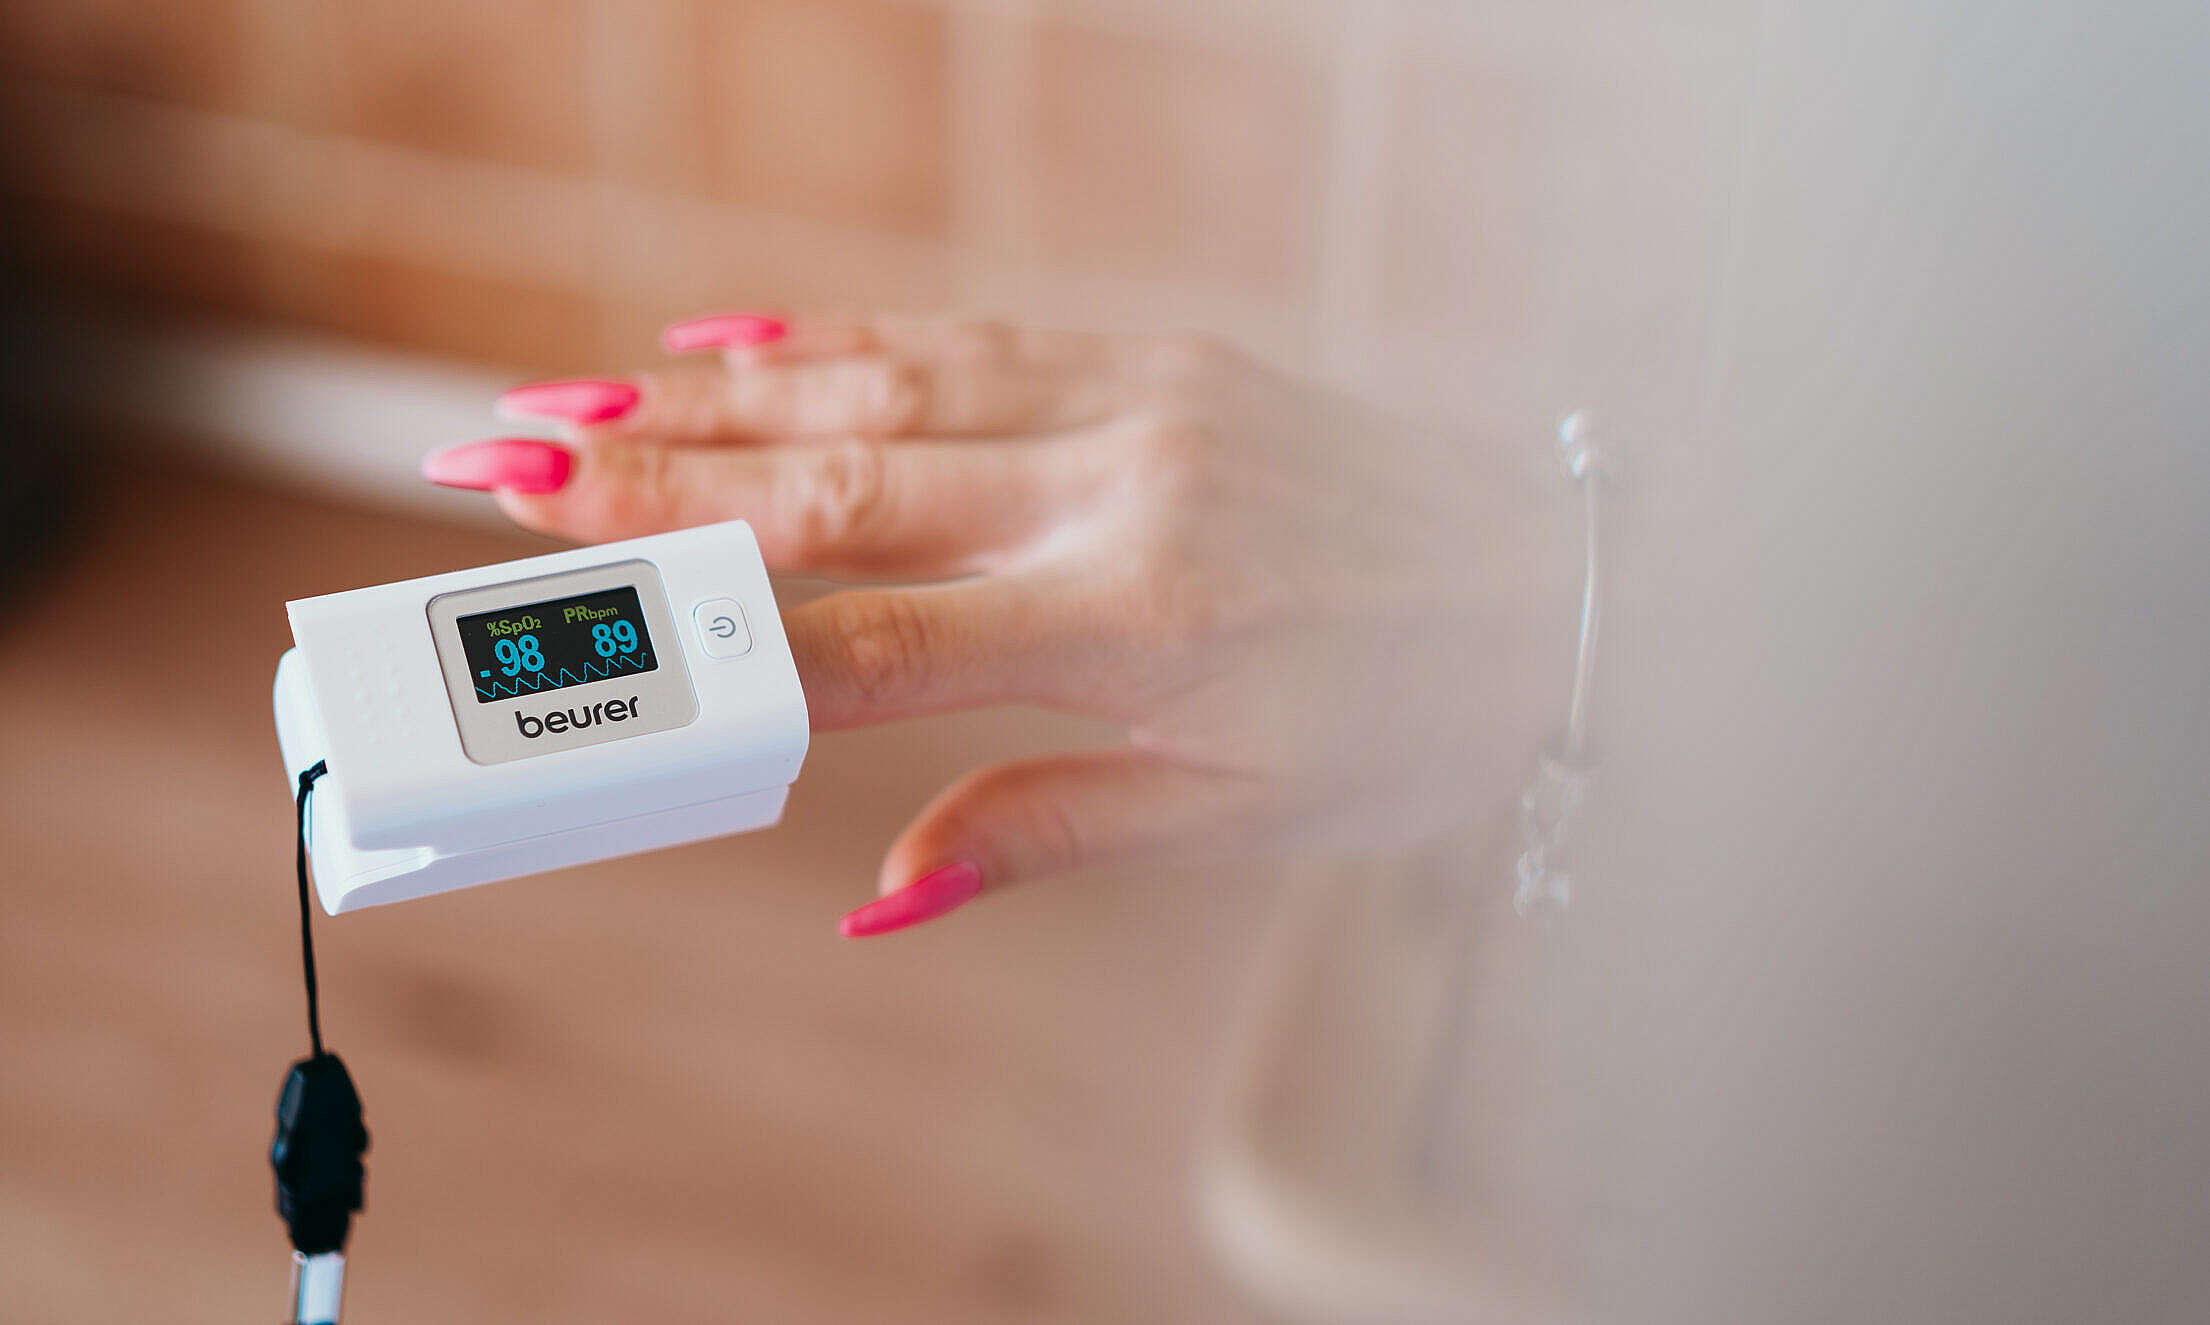 Woman Using a Pulse Oximeter to Check Her Oxygen Saturation Free Stock Photo